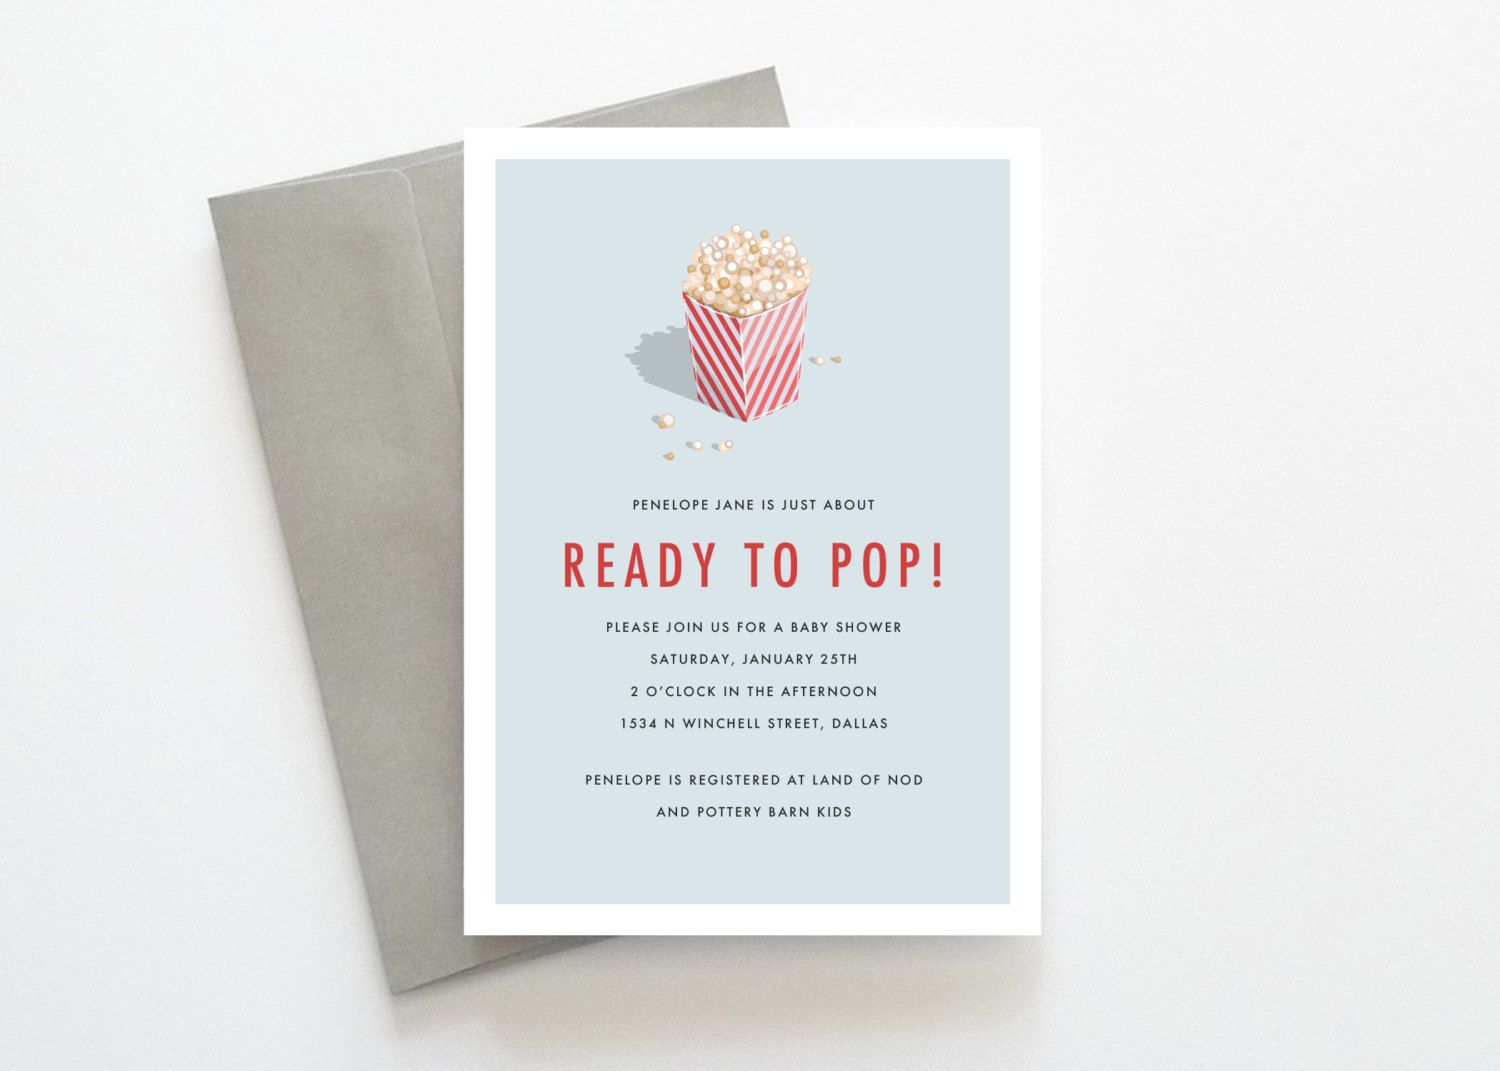 Baby shower invitations popcorn baby shower invitations baby baby shower invitations popcorn baby shower invitations filmwisefo